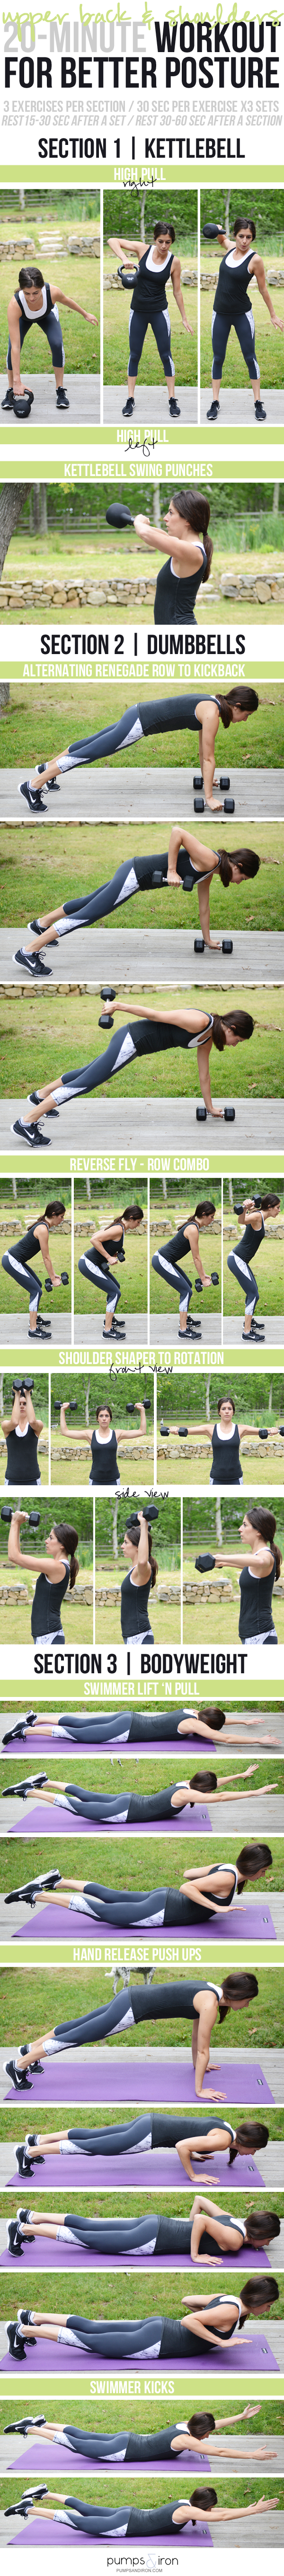 20-Minute Workout for Better Posture (targets upper back and shoulders)